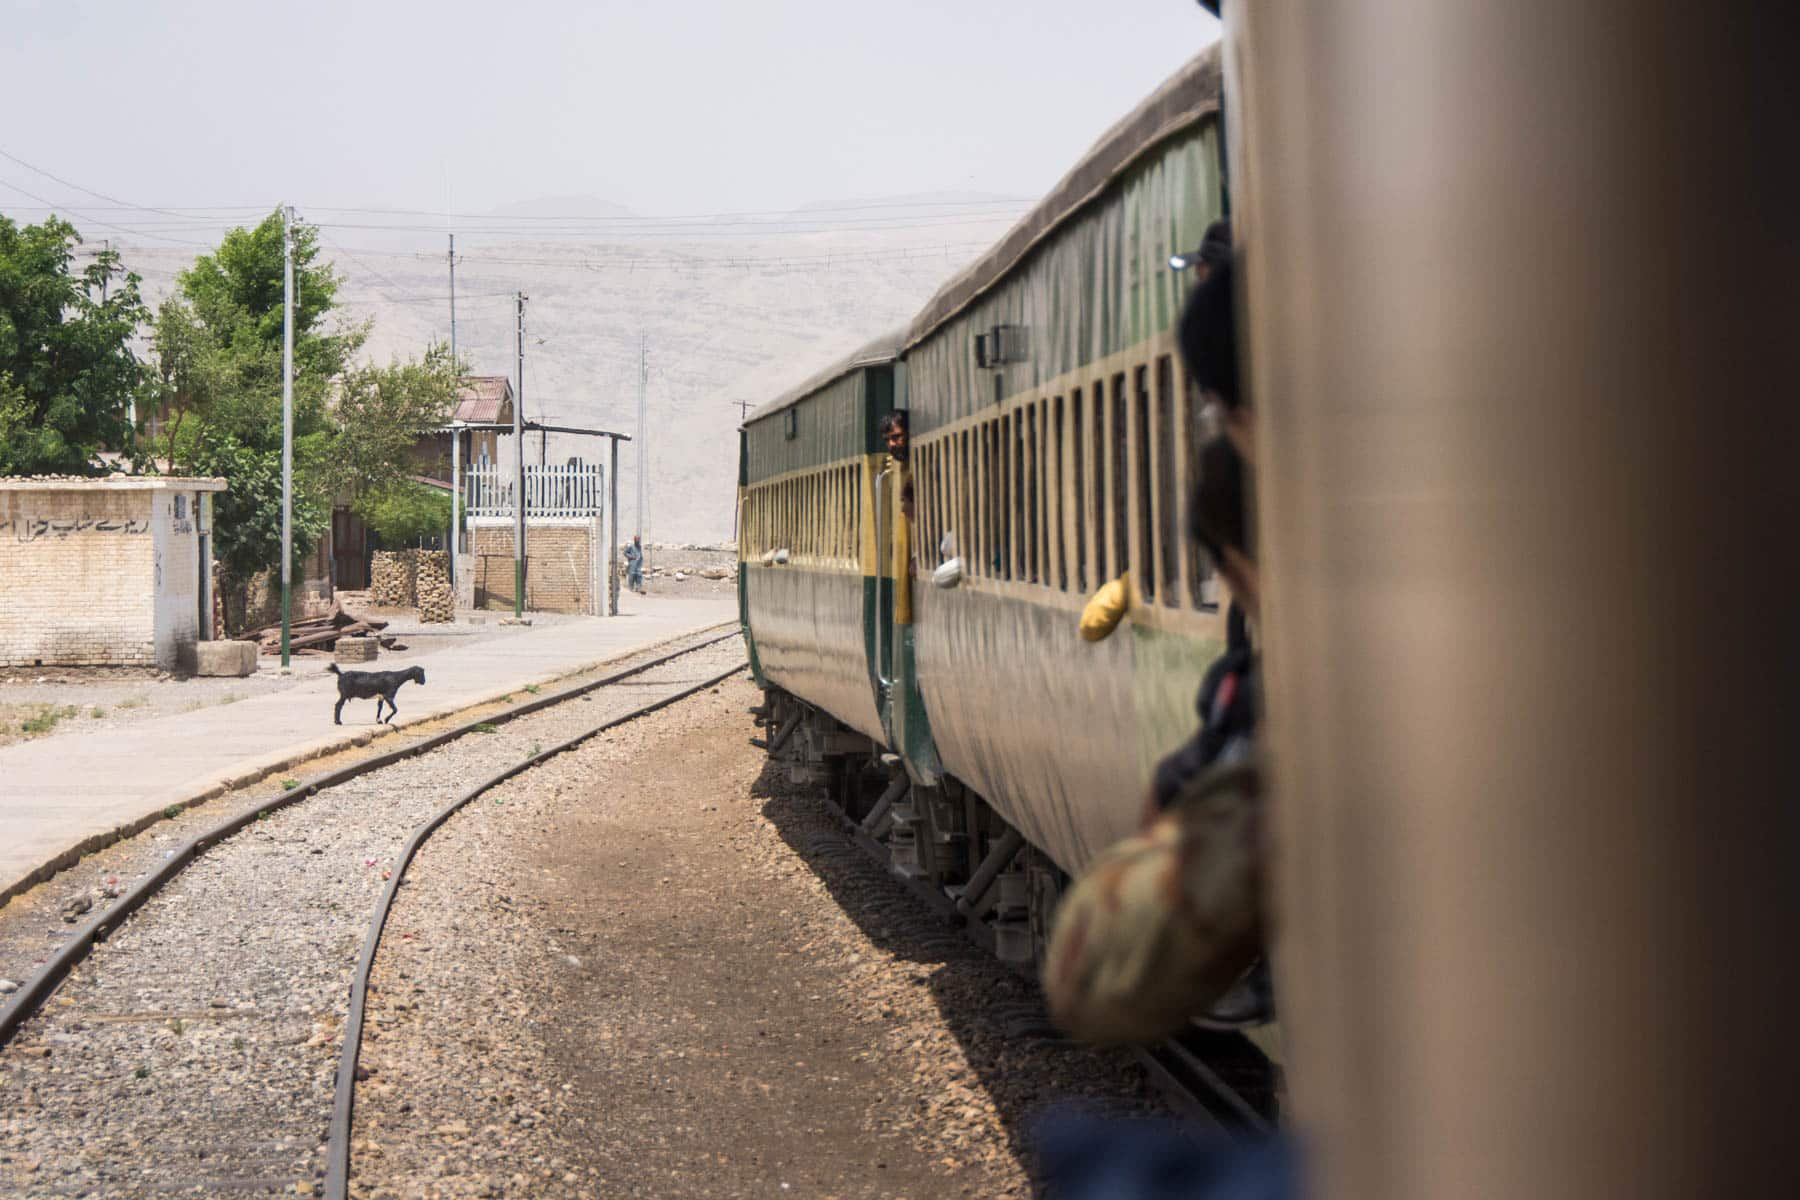 Guide to train travel in Pakistan - Goat on the train platform - Lost With Purpose travel blog